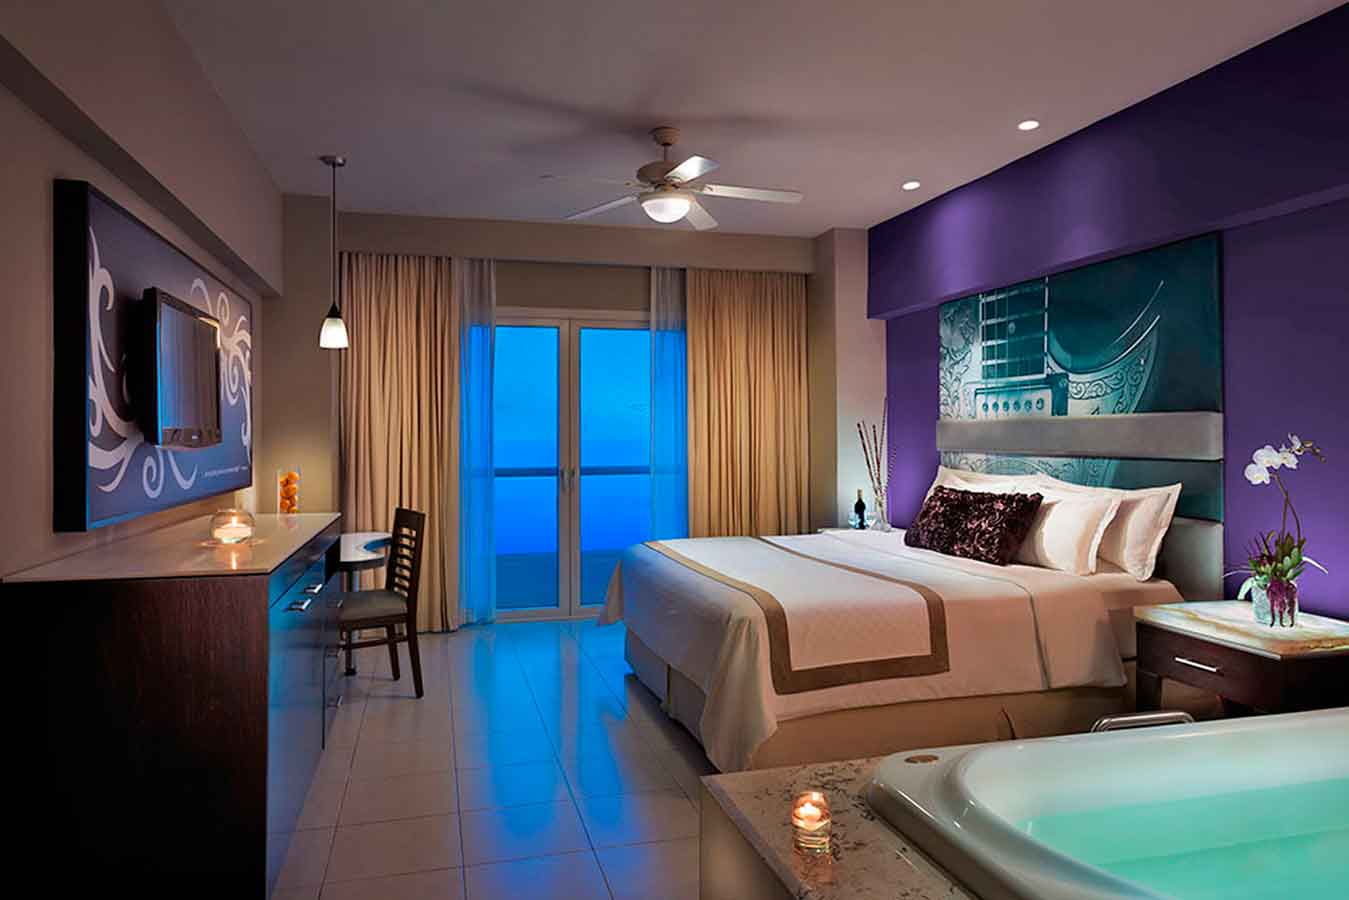 Deluxe Gold Room  CALGARY- MEXICO DIRECT FLIGHT 7 NIGHT PACKAGE  VANCOUVER - MEXICO DIRECT FLIGHT 7 NIGHT PACKAGE  - DOUBLE OCCUPANCY: $2249 CAD PER PERSON  - CHILD 2-12: $799 CAD PER CHILD (BASED ON 2 ADULTS SHARING A ROOM)  - CHILD 13-17: $1249 CAD PER CHILD (BASED ON 2 ADULTS SHARING A ROOM)